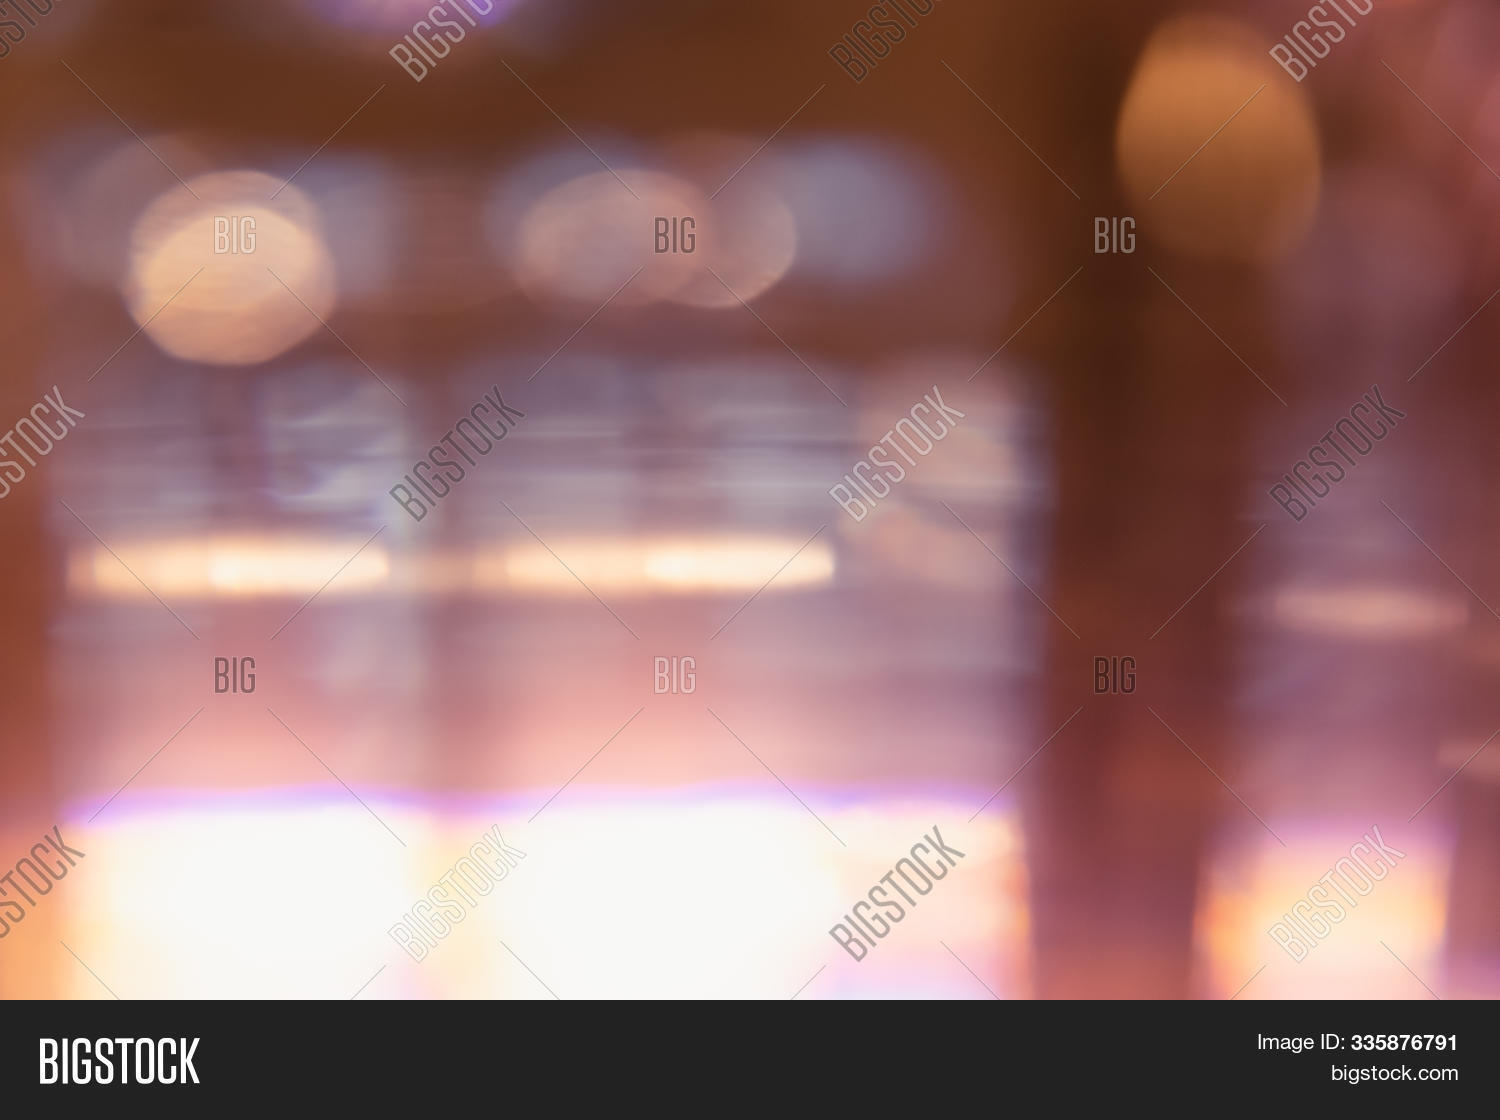 abstract,abstraction,art,artwork,back-lit,backdrop,background,banner,blur,blurry,bokeh,bright,color,colorful,composition,concept,copy,cover,creative,decor,decoration,design,desktop,effect,focus,for,futuristic,glow,graphic,light,luxury,magical,natural,nature,orange,shape,shine,shiny,soft,softness,space,style,template,text,texture,white,yellow